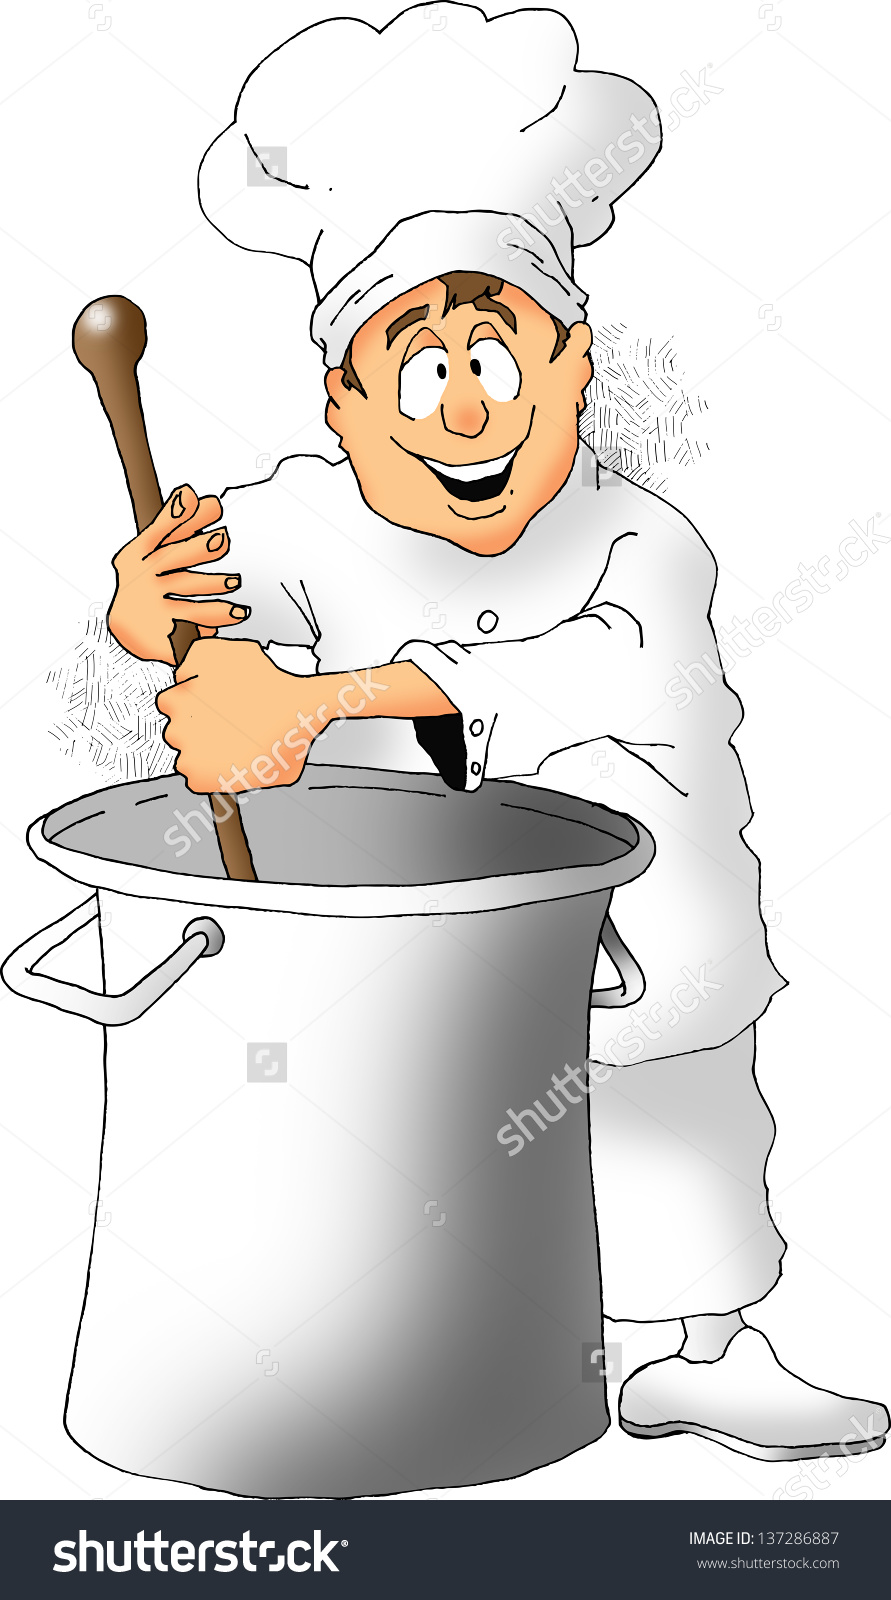 Cartoon Chef Stirring Big Pot Stock Illustration 137286887.